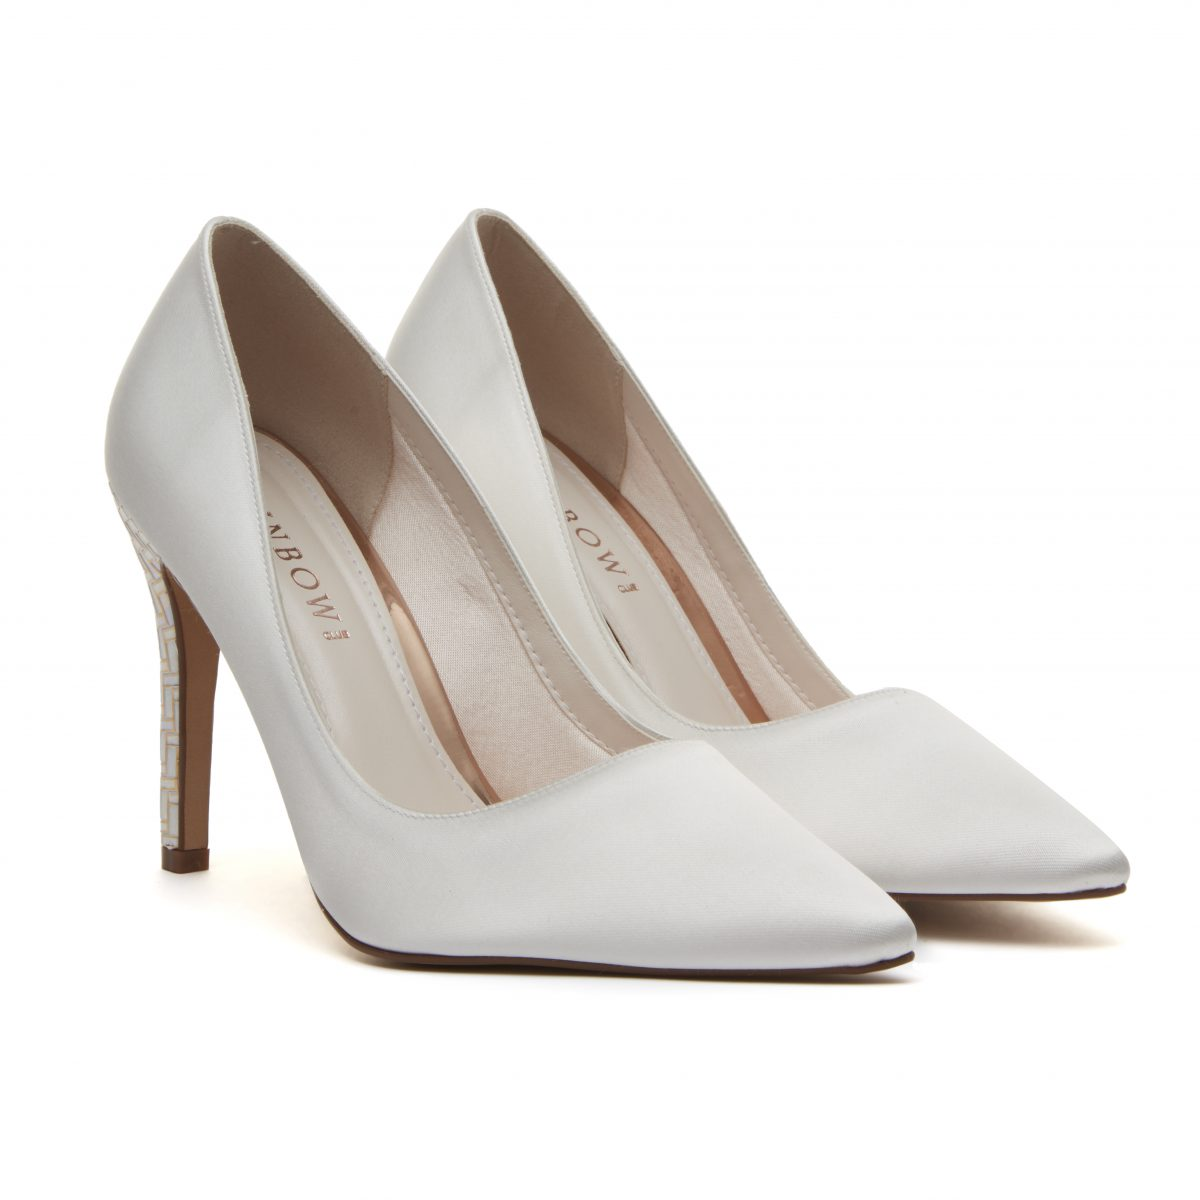 Rainbow Club Rochelle - Ivory Satin & Parquet Heel Court Shoe 1